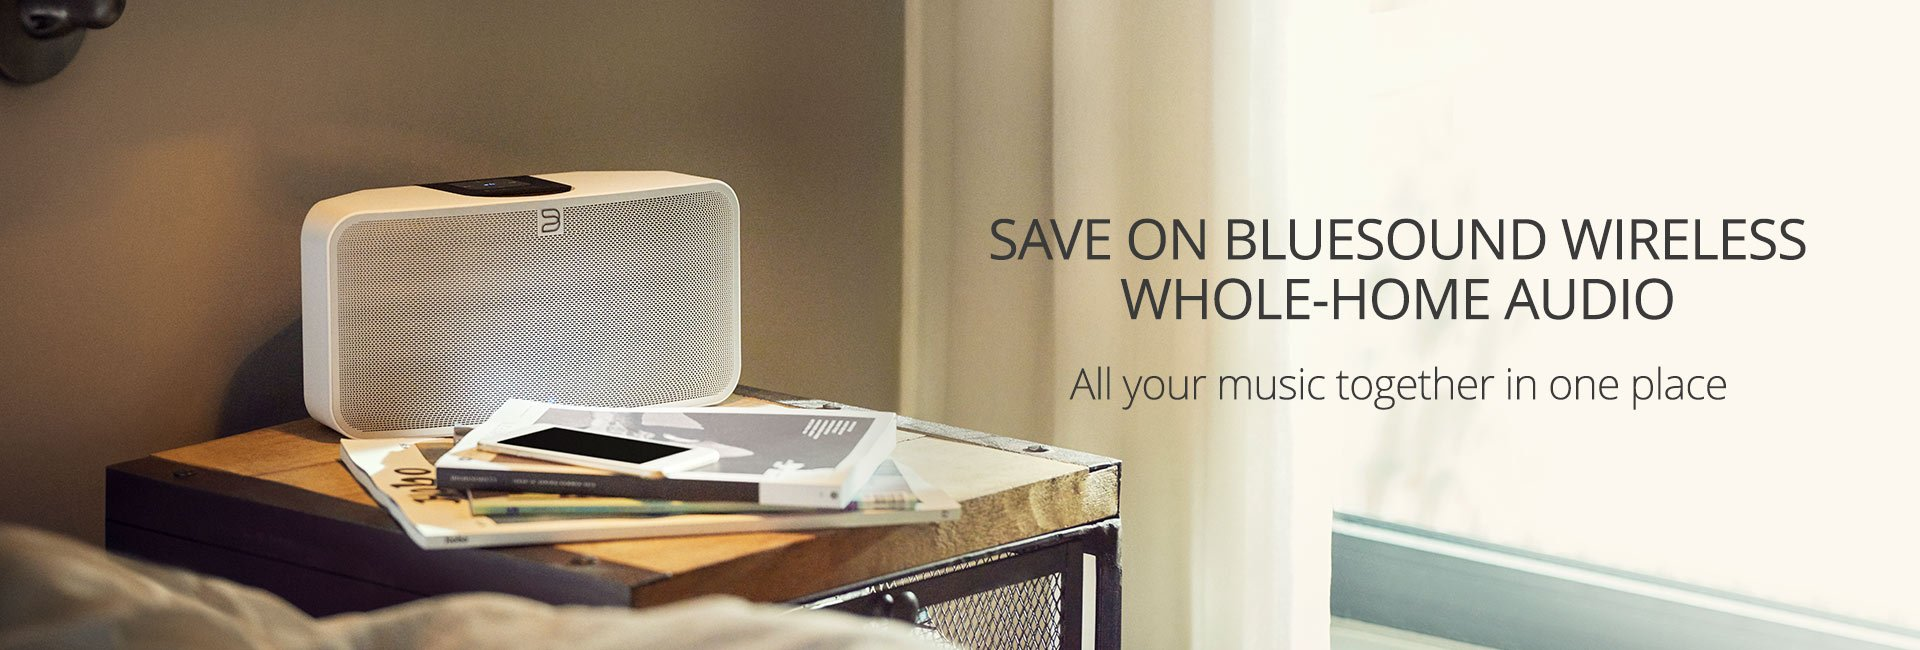 Save on Bluesound wireless whole-home audio — all your music together in one place